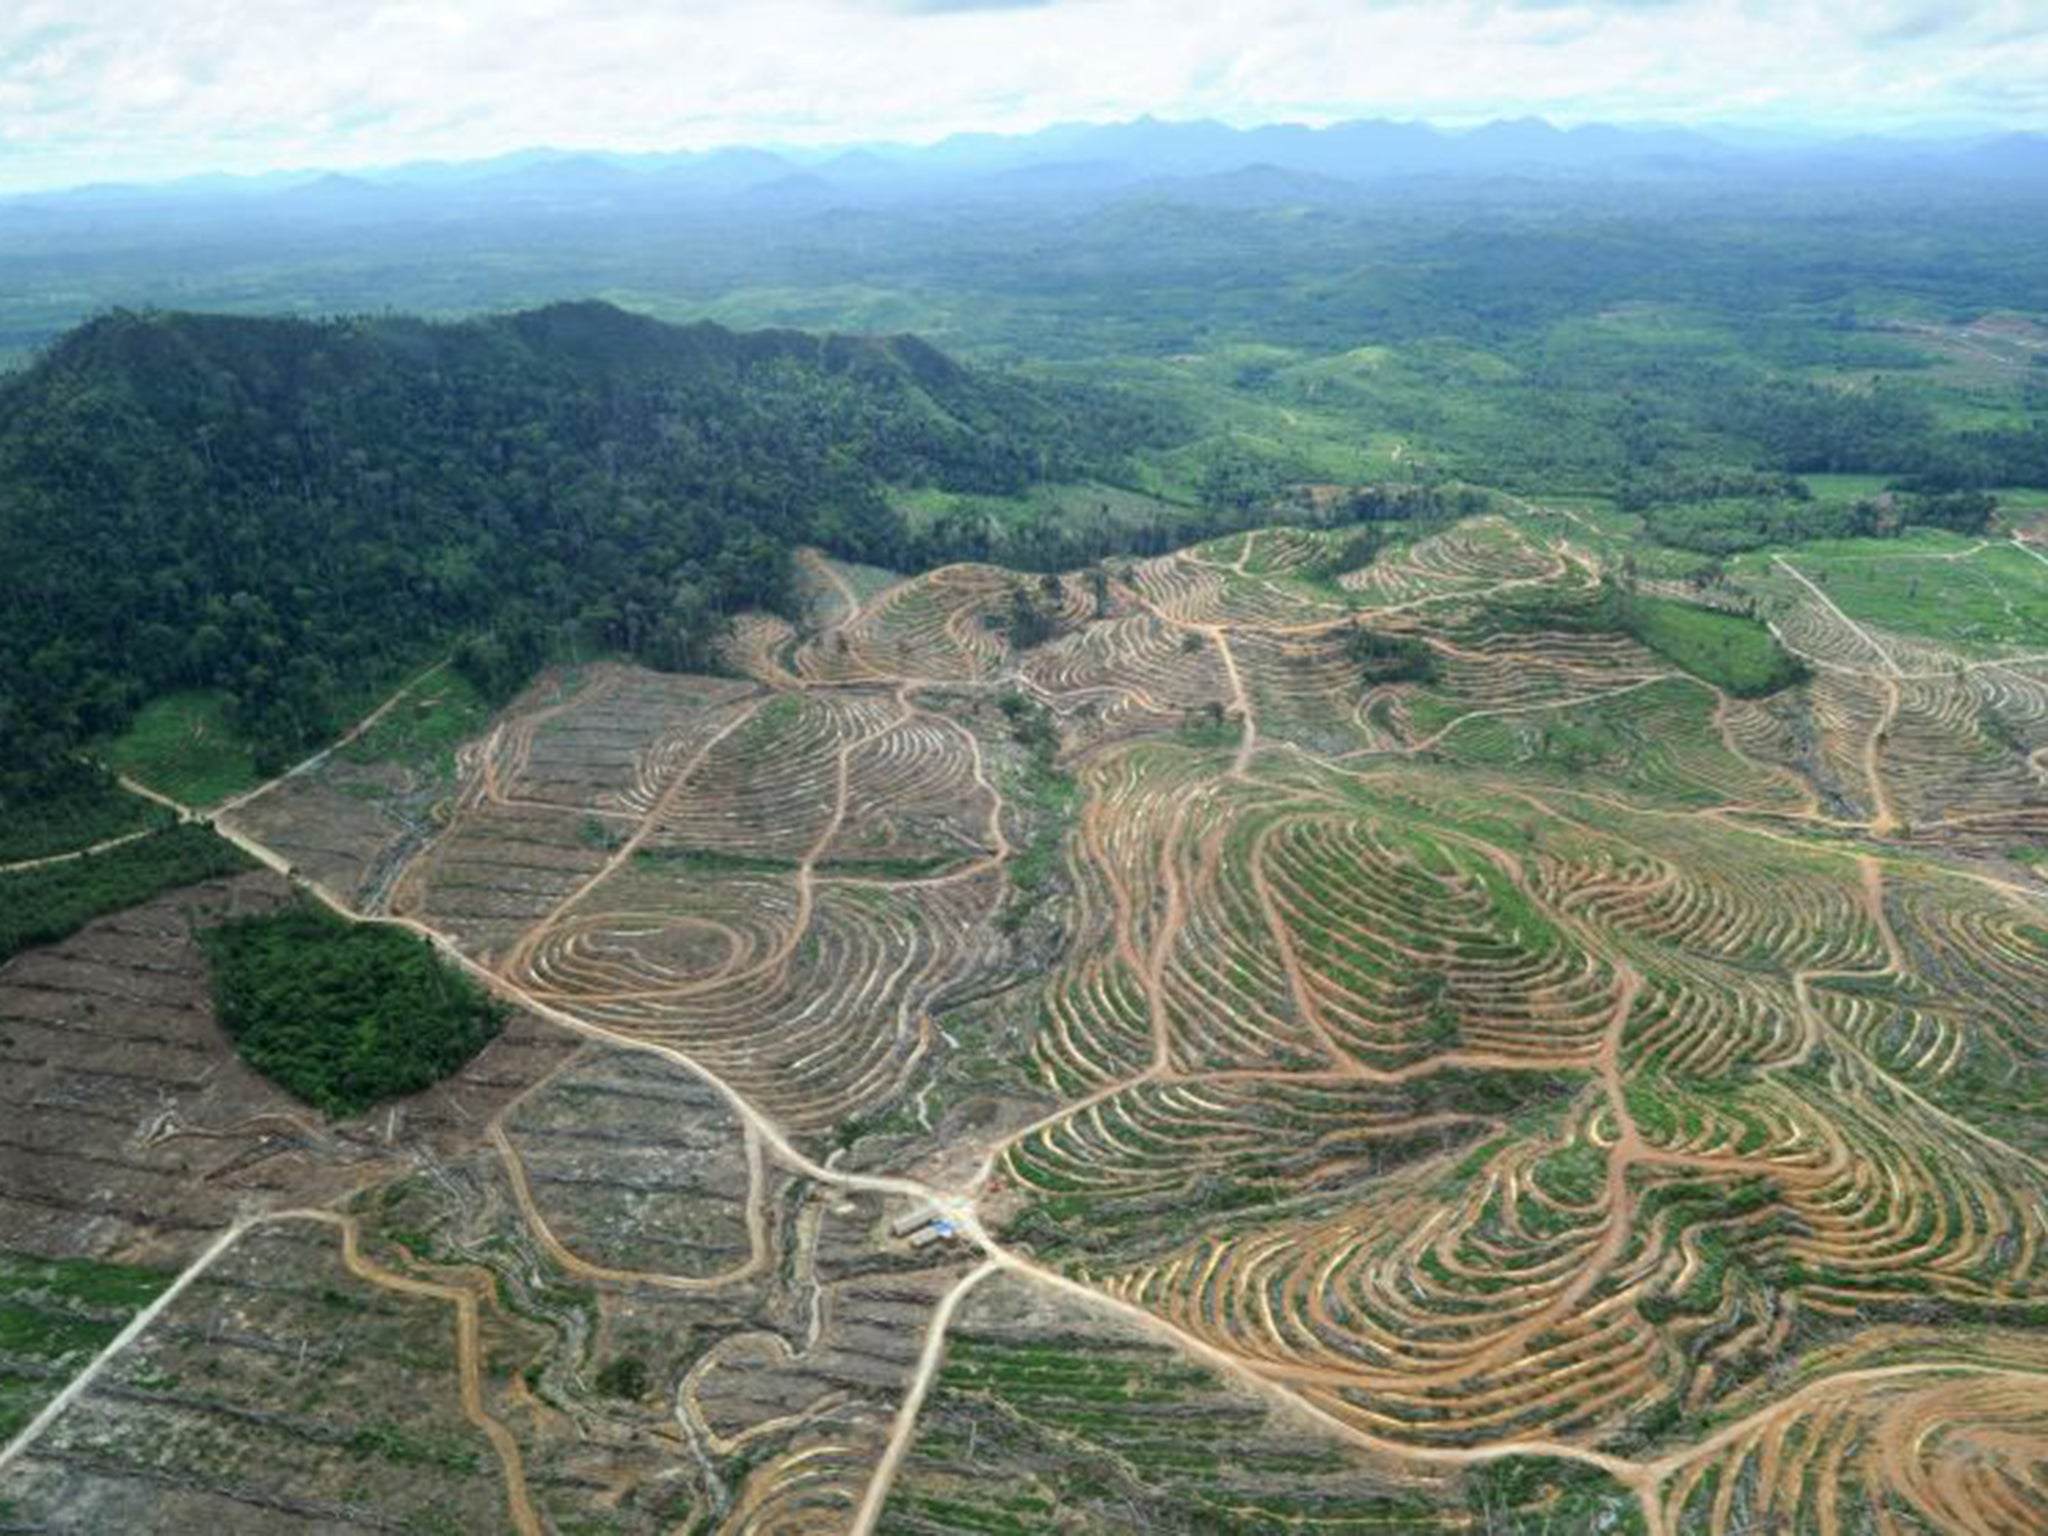 Motor Oil Brands >> Leading brands accused by Greenpeace of 'failing' to protect Indonesia's forest   Asia   News ...